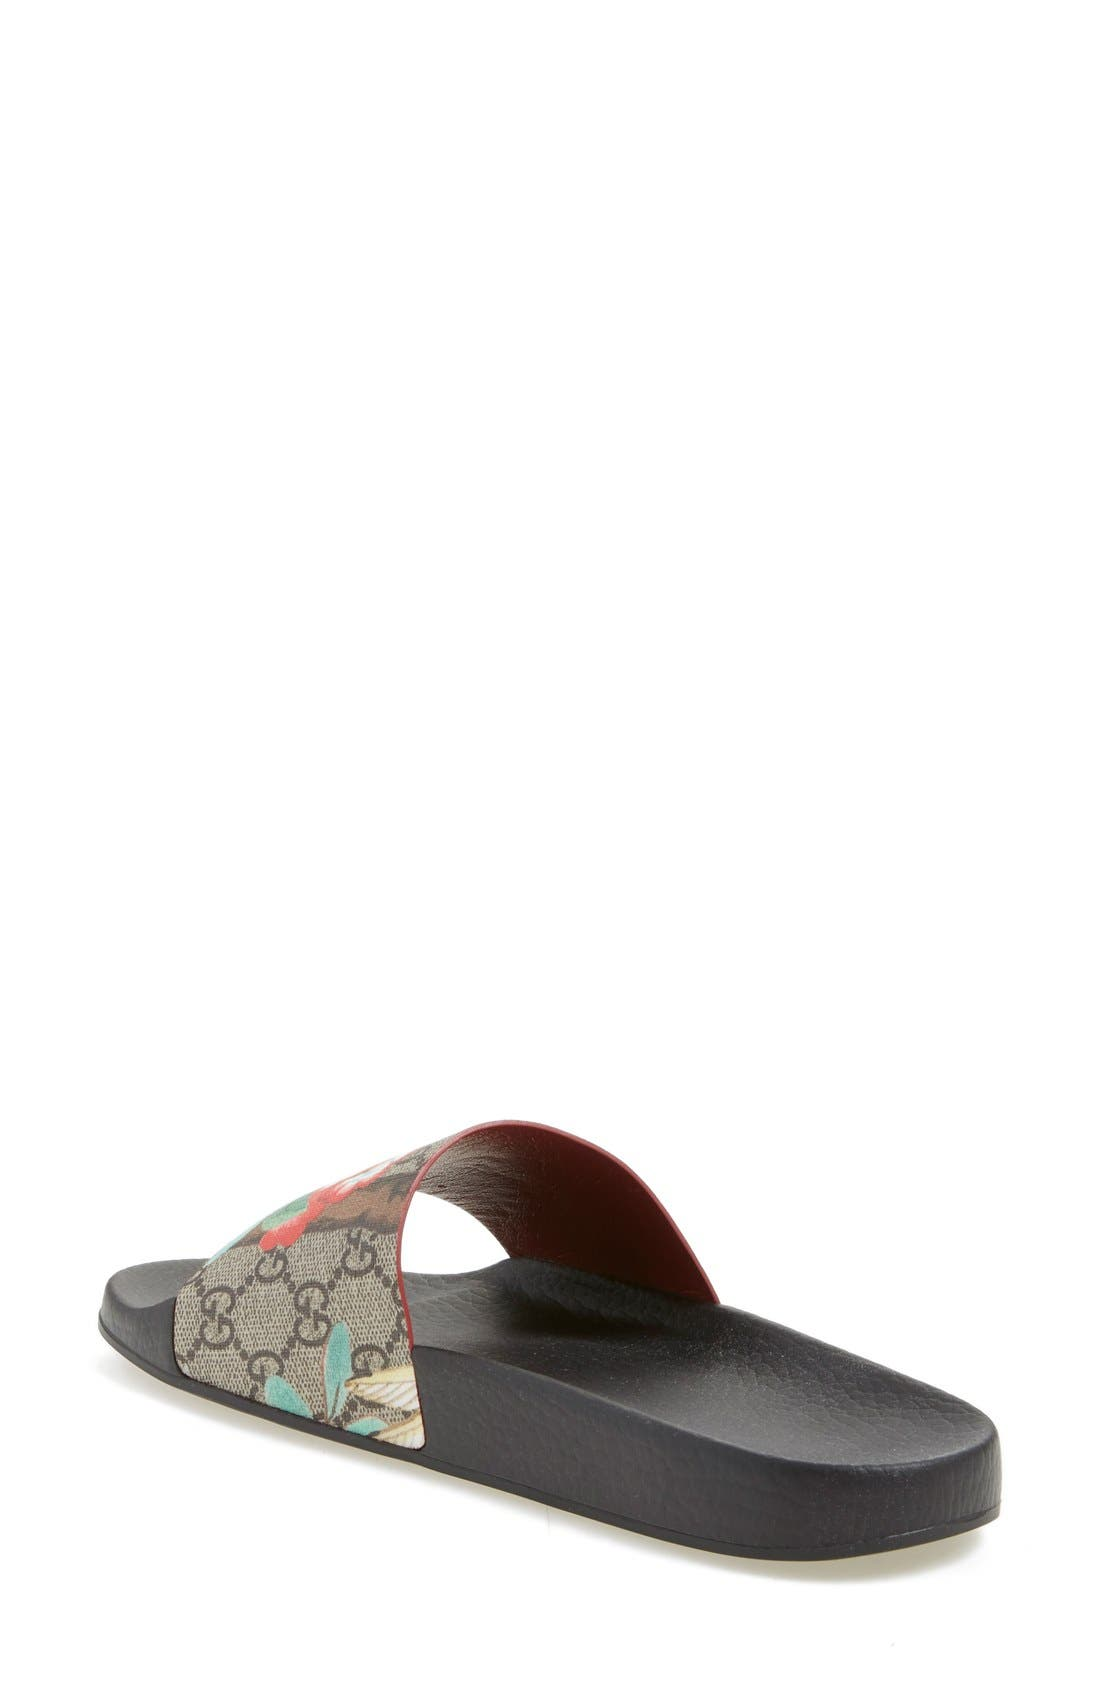 Pursuit Floral Logo Slide Sandal,                             Alternate thumbnail 2, color,                             283